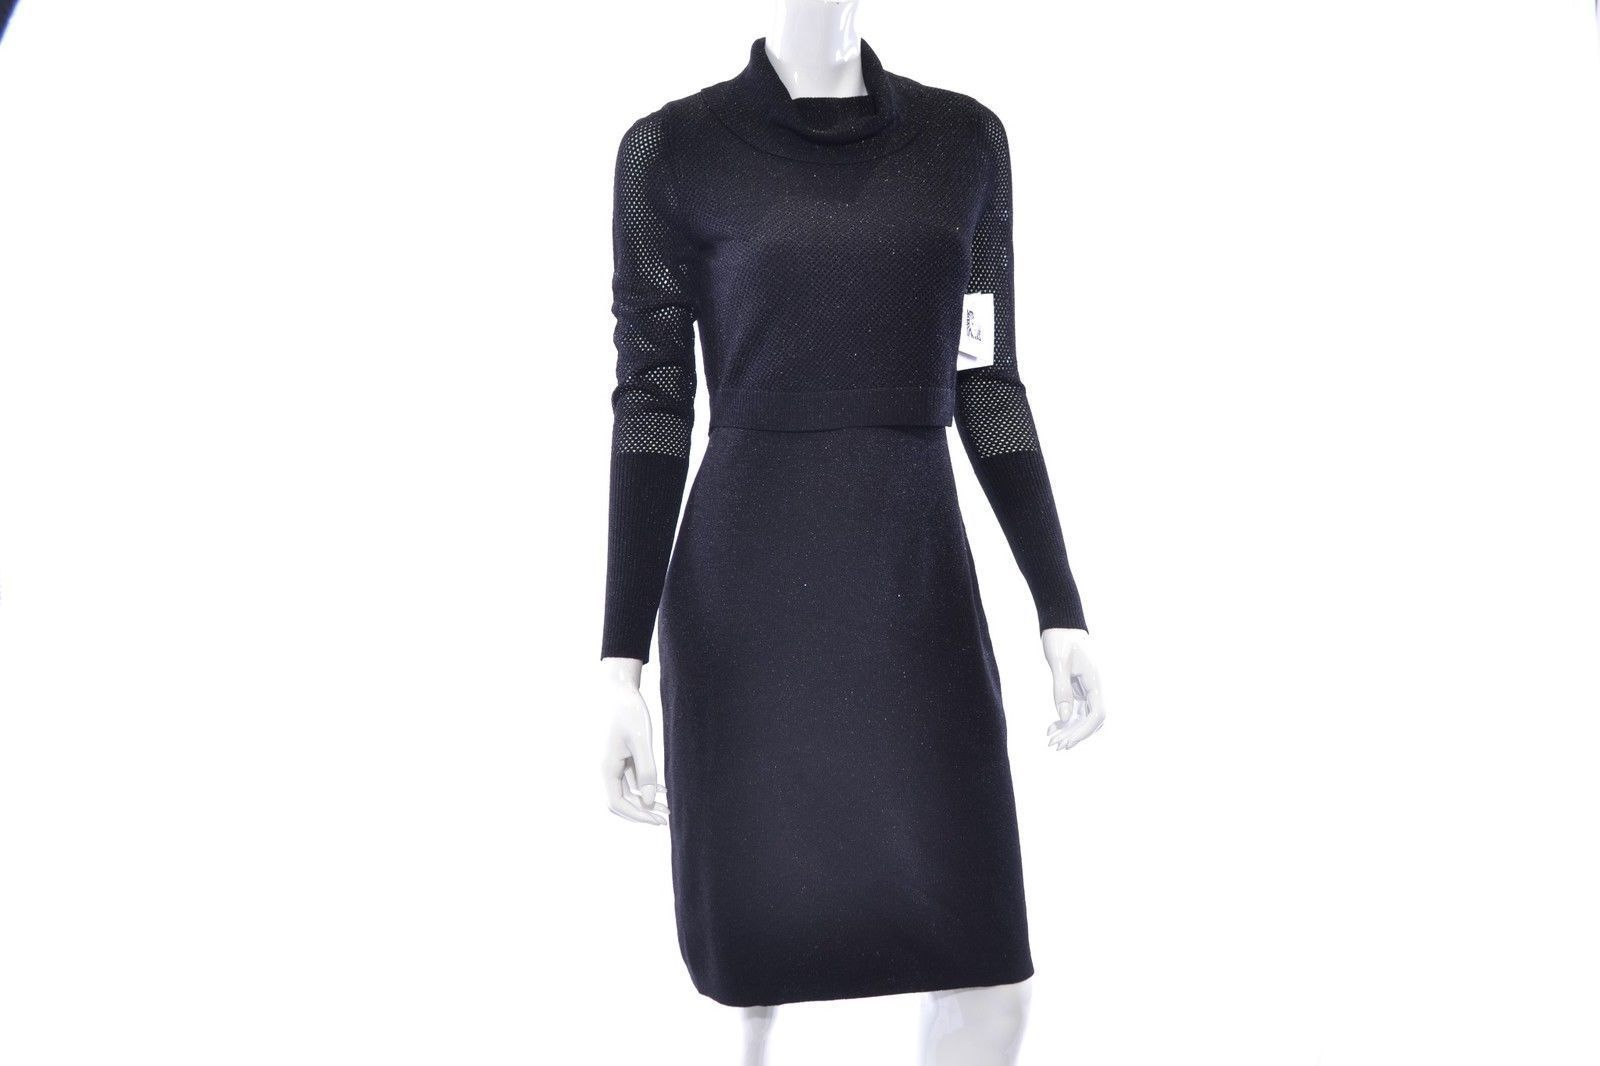 Primary image for Anne Klein Women Lurex Overlay Knit Sweater Black Dress Size Large